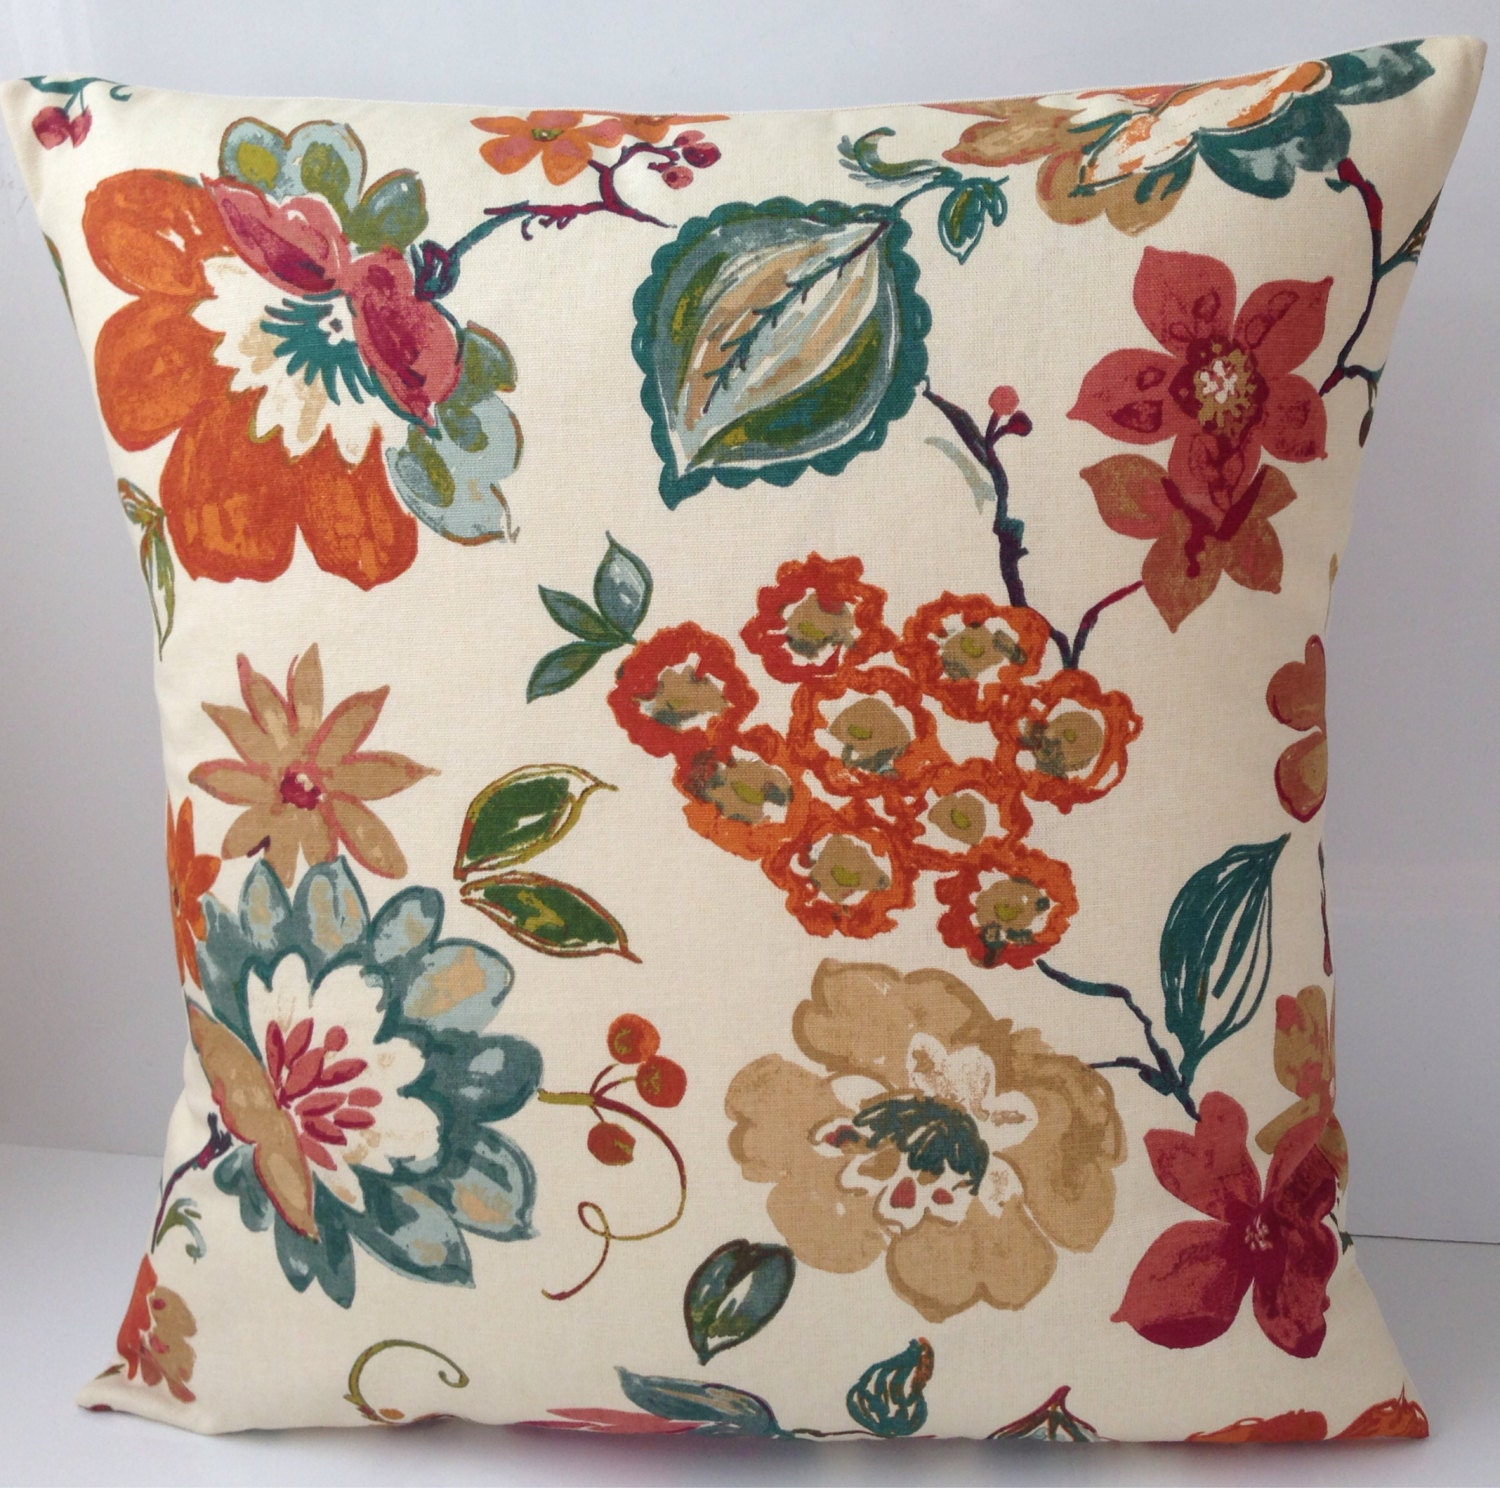 Teal And Orange Decorative Pillows : Decorative Throw Pillow Cover Teal Orange Pillow Cushion